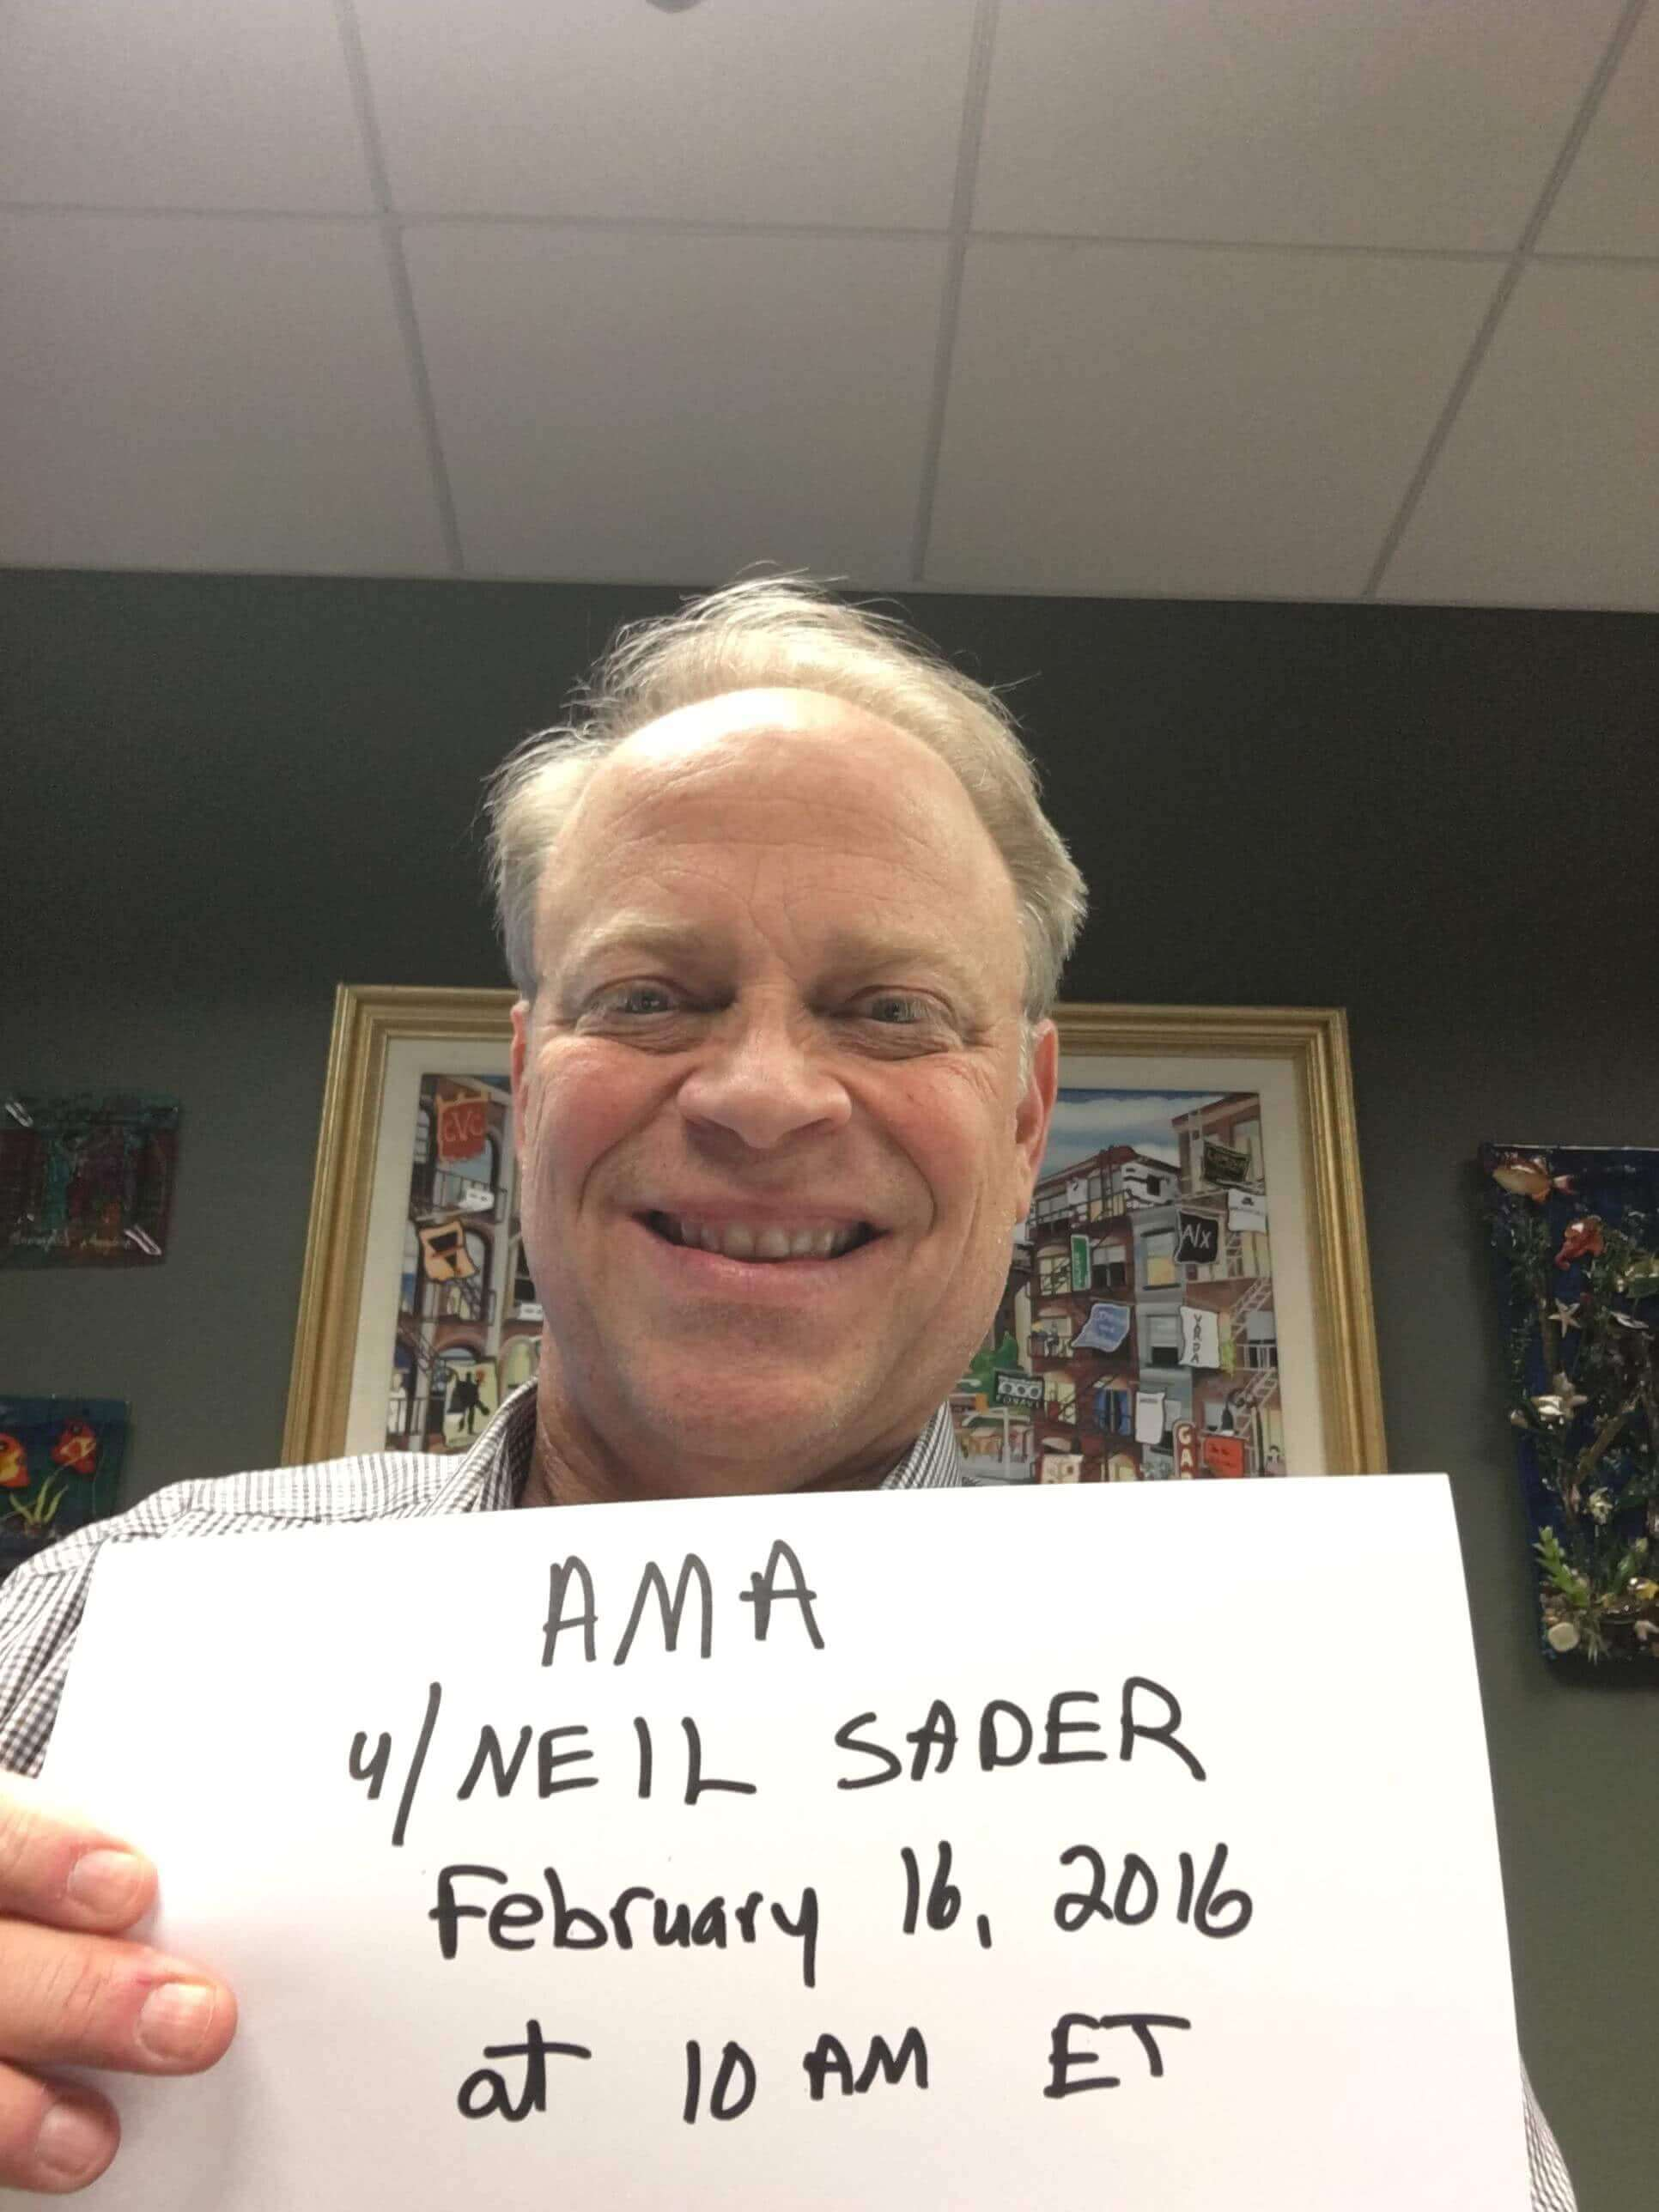 Bankruptcy Lawyer Did an AMA On Student Loan Debt - College